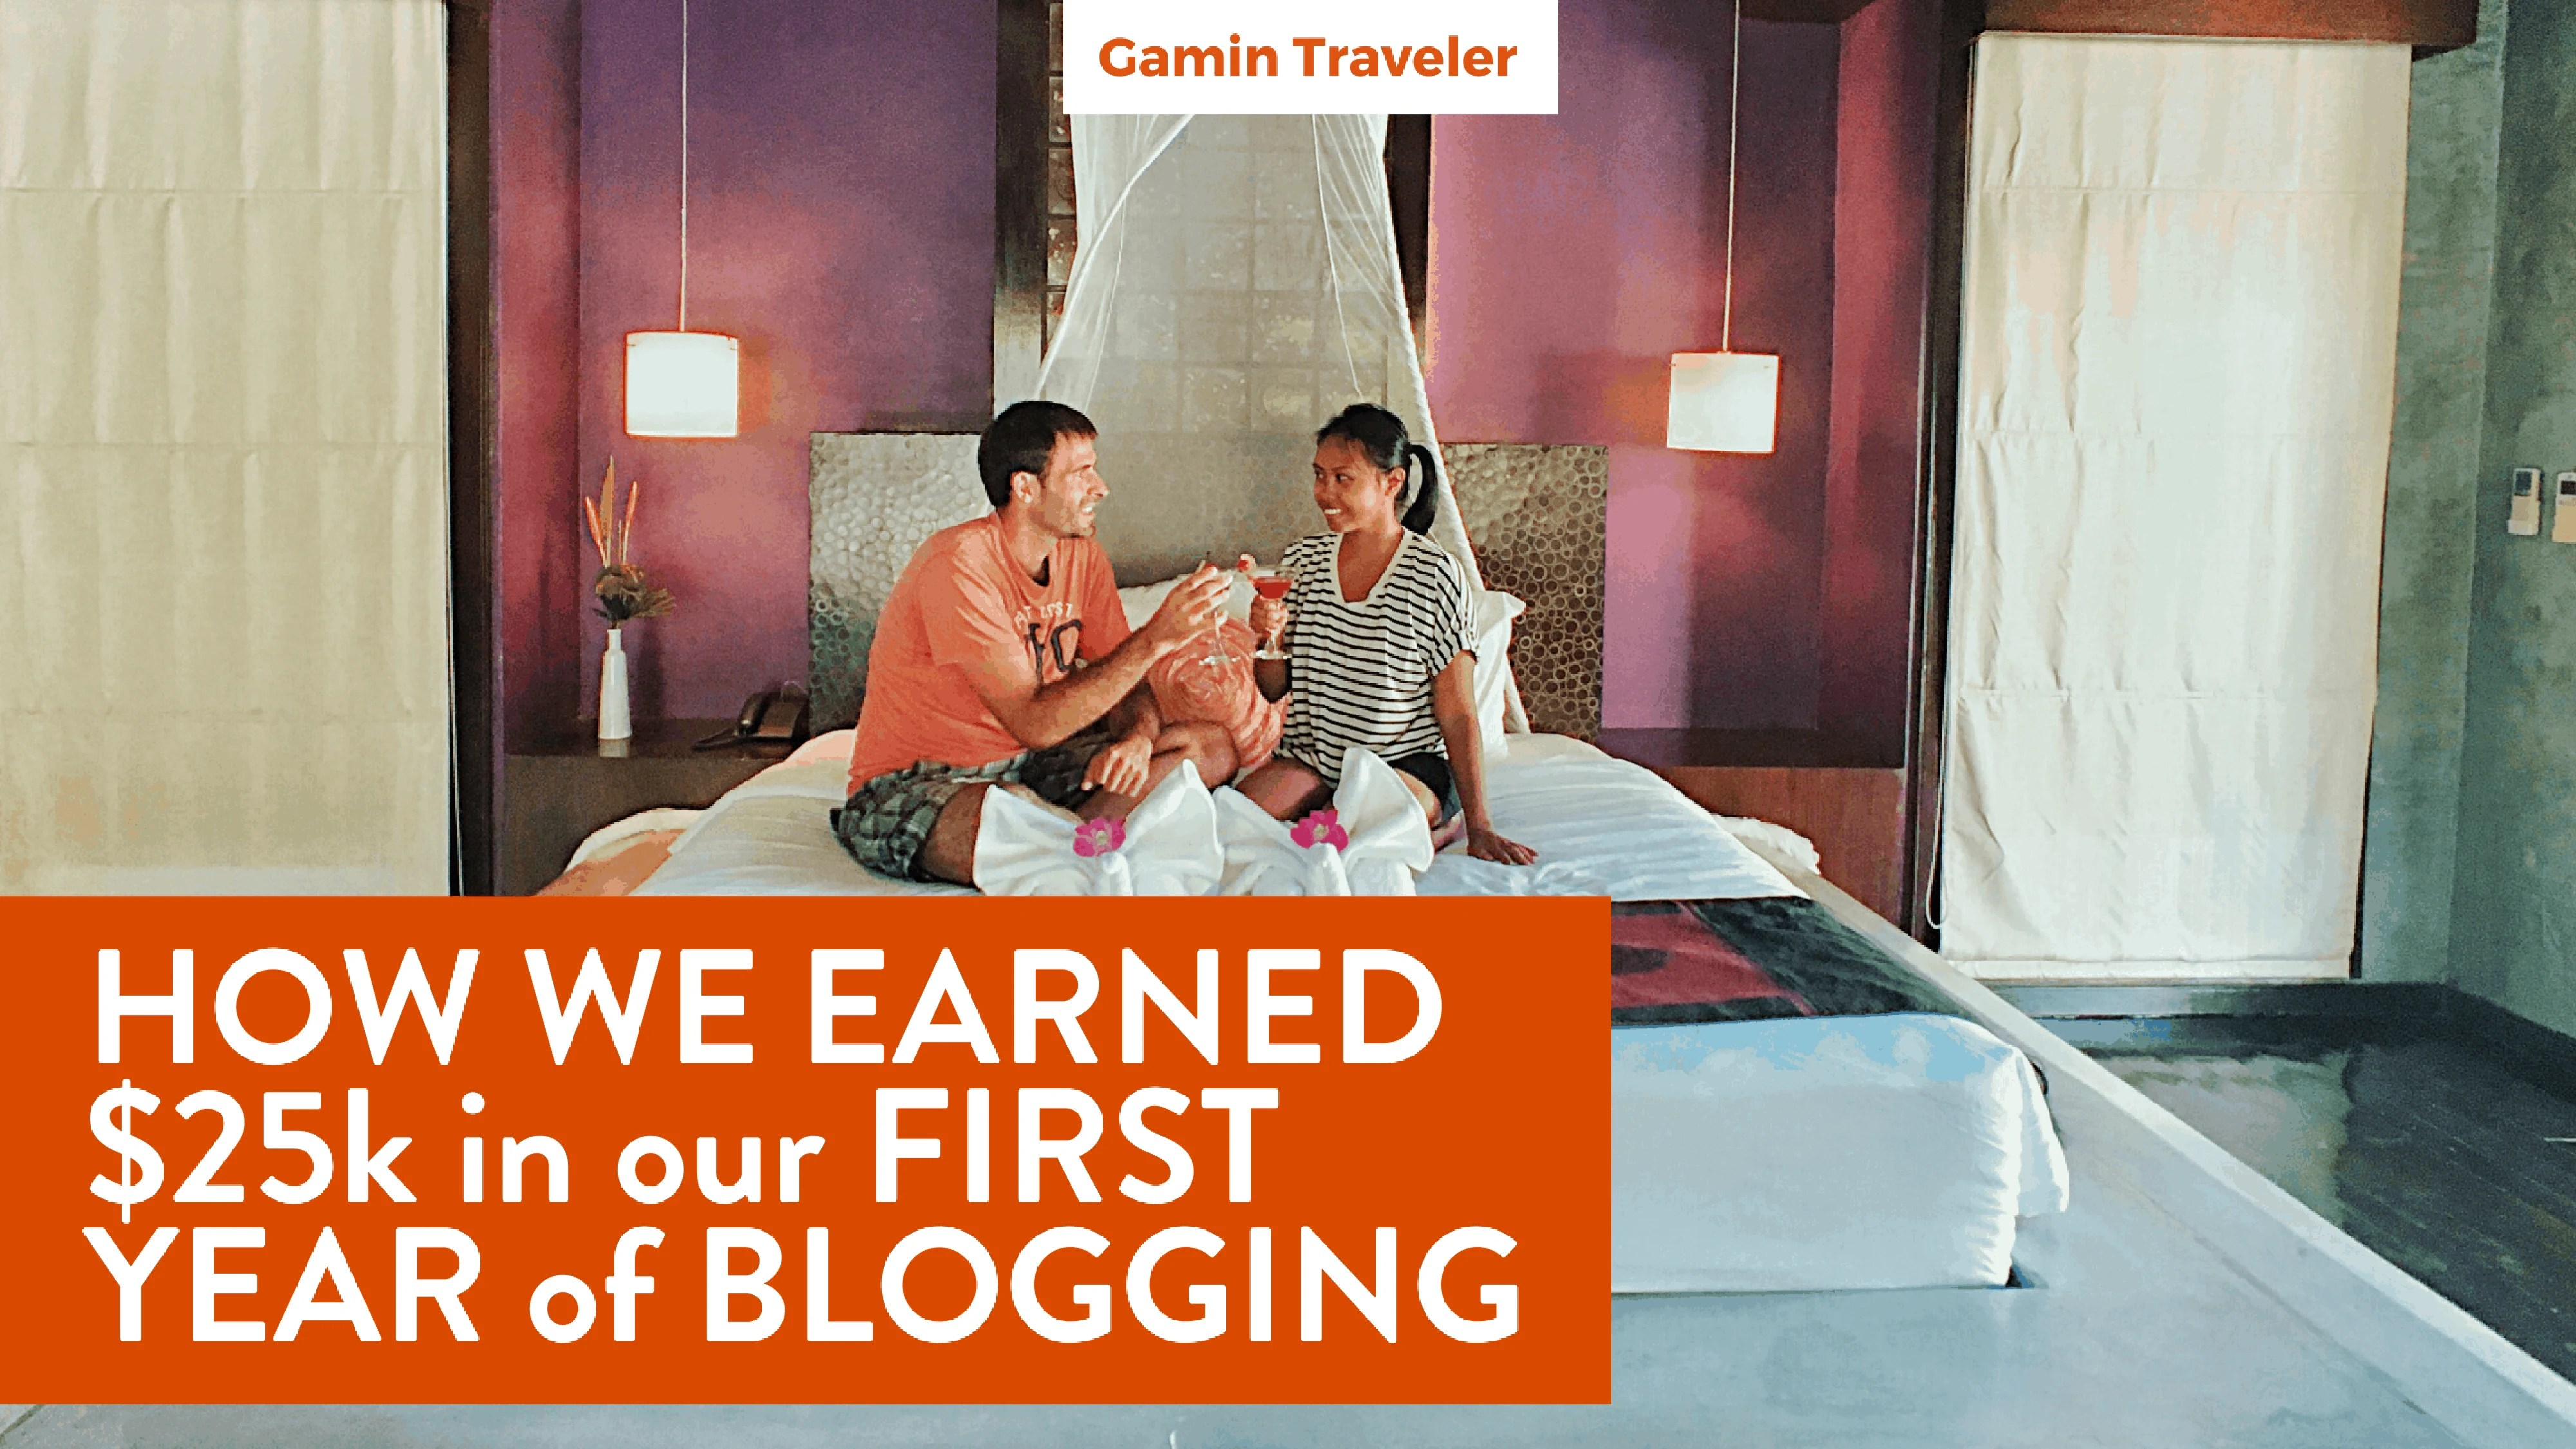 Gamintraveler, travel bloggers writing for a year, earned their first 25 thousand dollars in their first year.